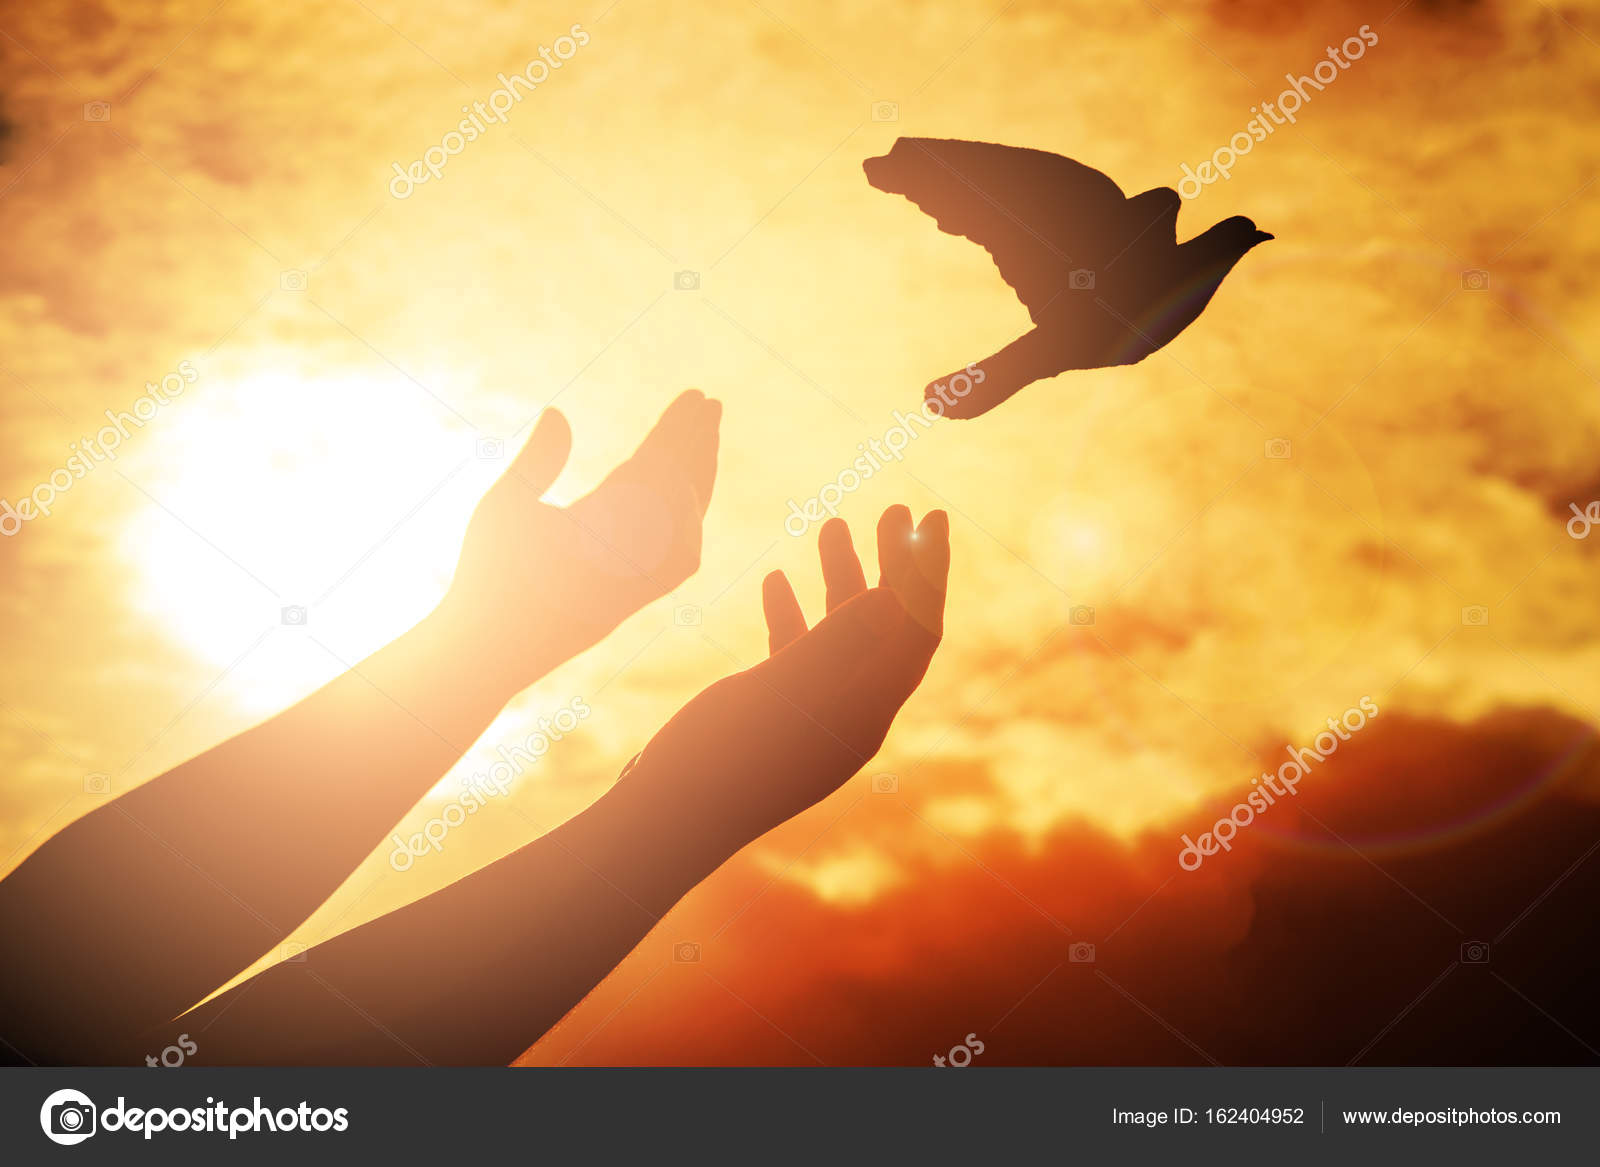 Free Photography Stock Man Praying And Free Bird Enjoying Nature On Sunset Background